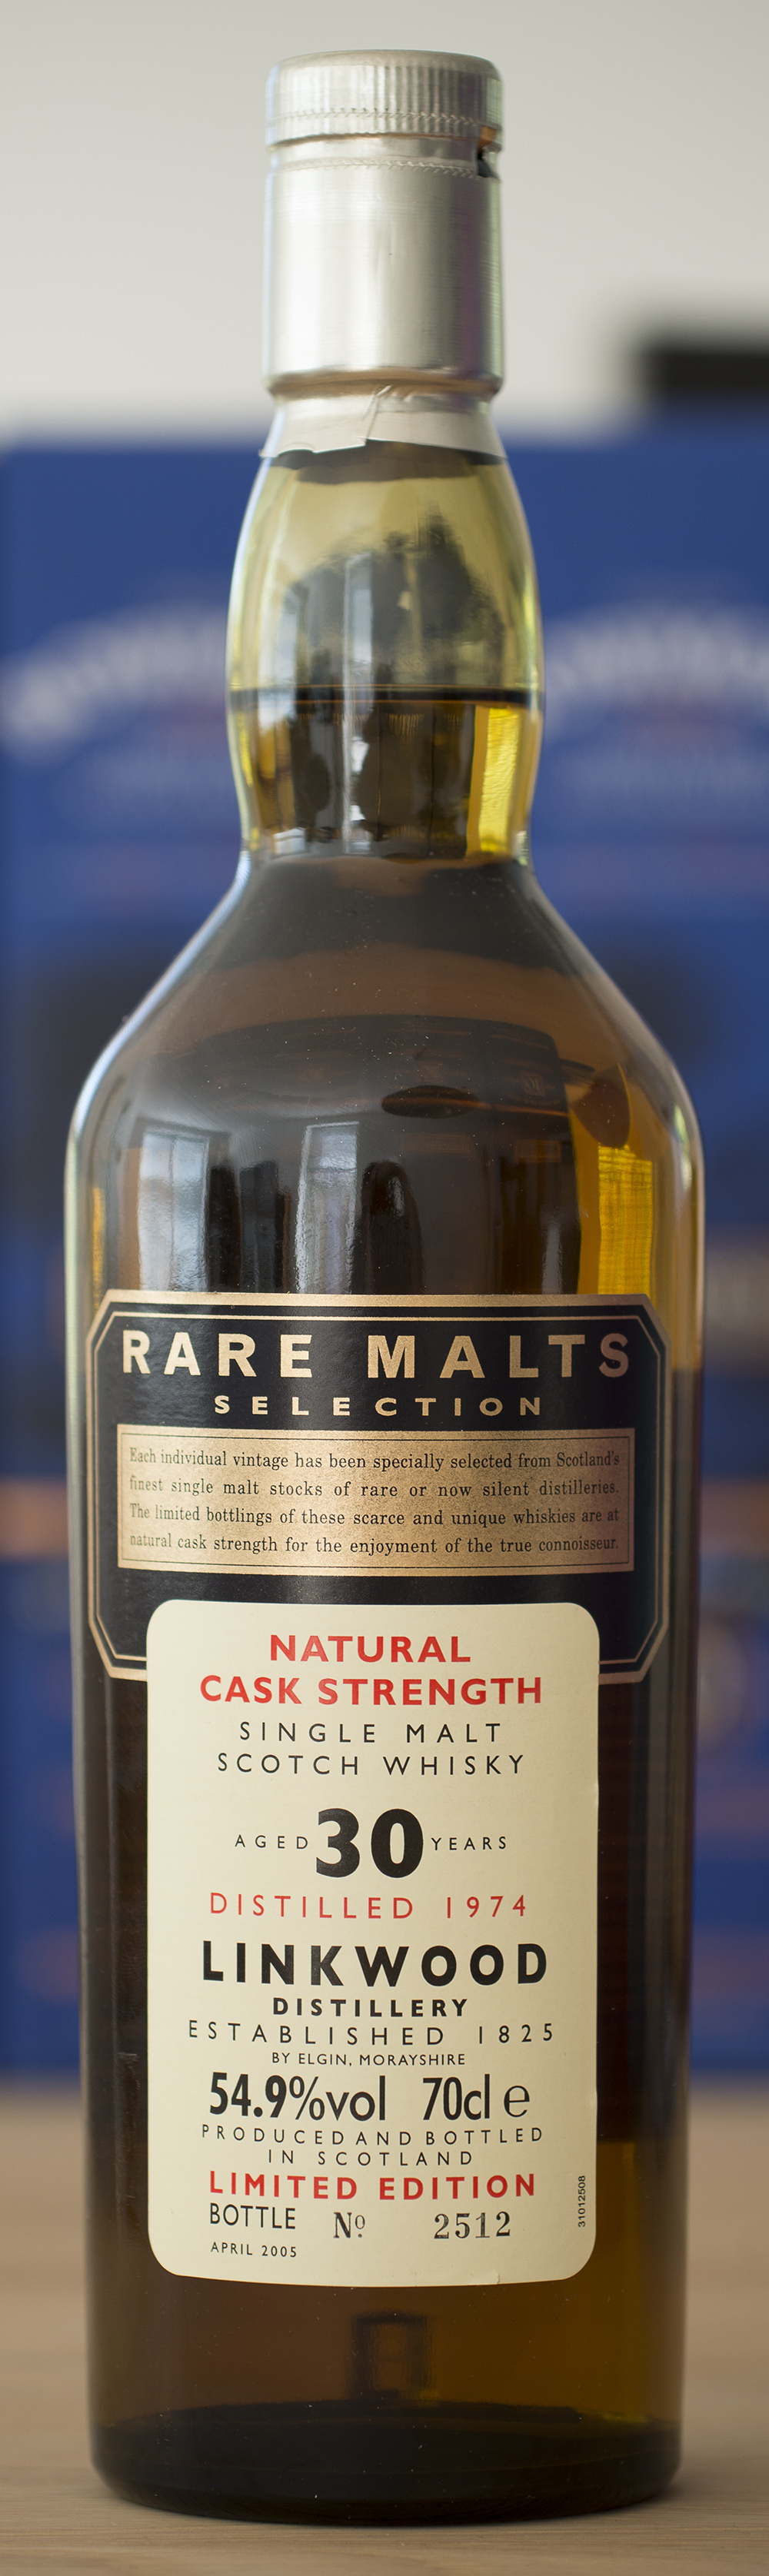 Billede: DSC_3319 Rare Malts - Linkwood 30 - distilled 1974.jpg